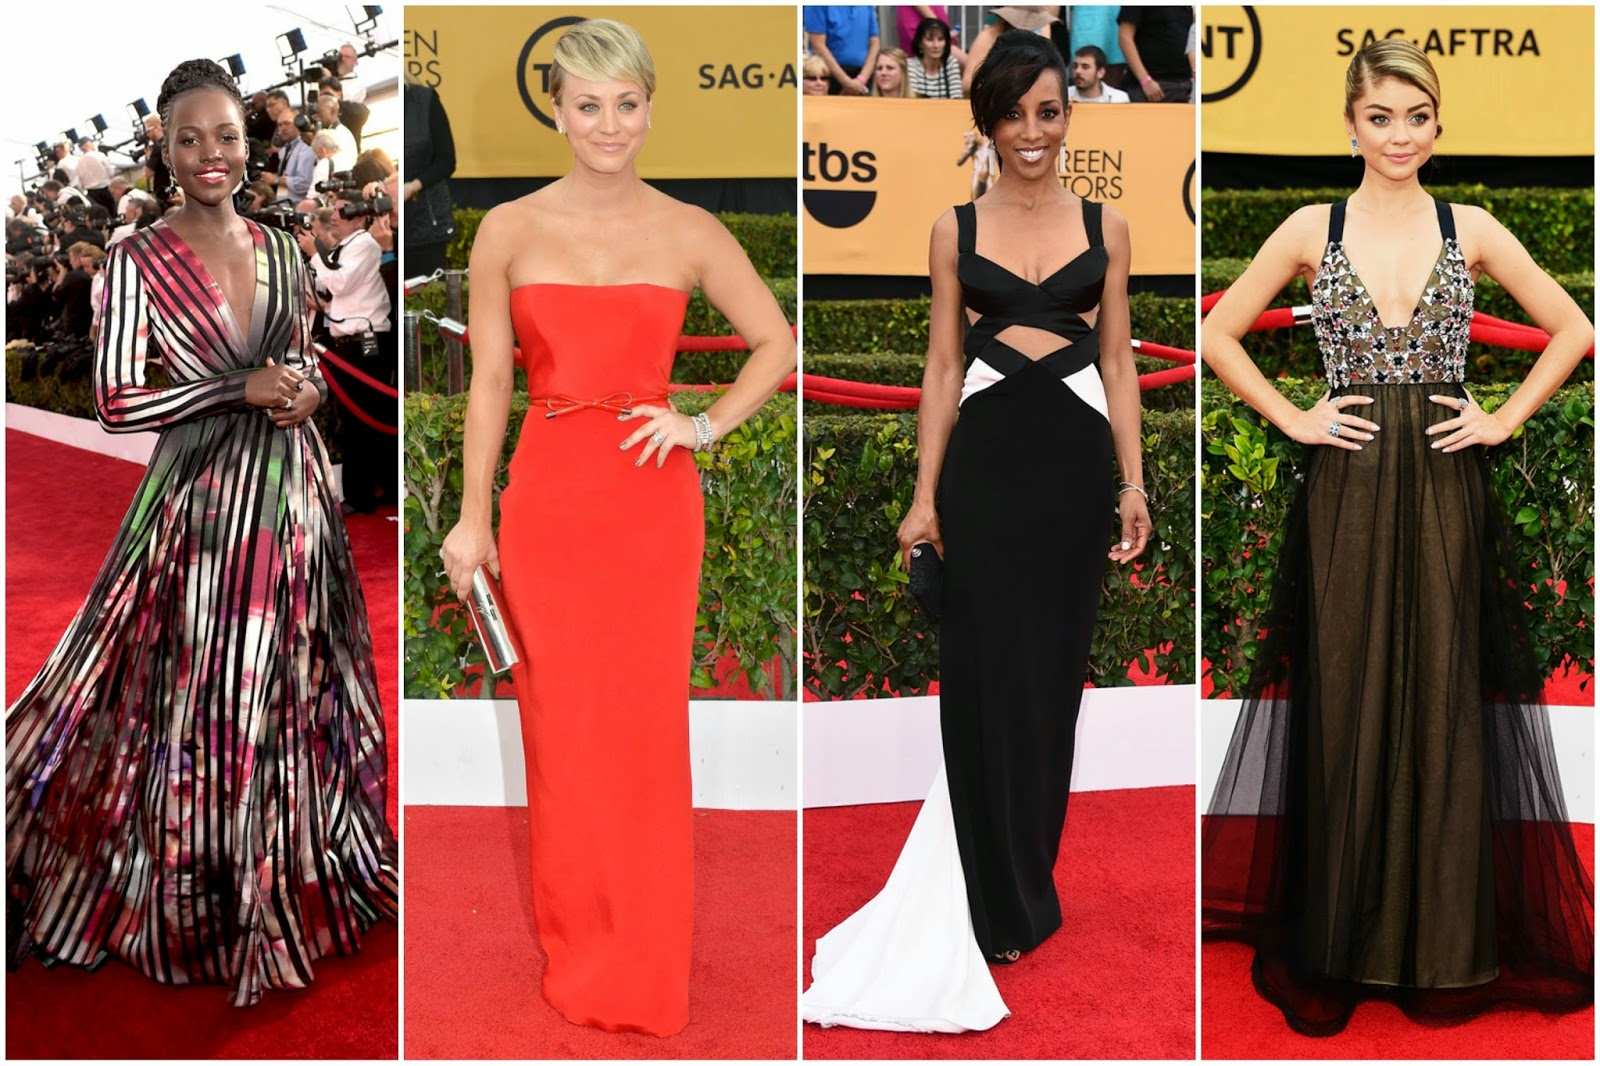 Best Dressed SAG Awards 2015 lupita nyong'o kaley cuoco sweeting shaun robinson sarah hyland